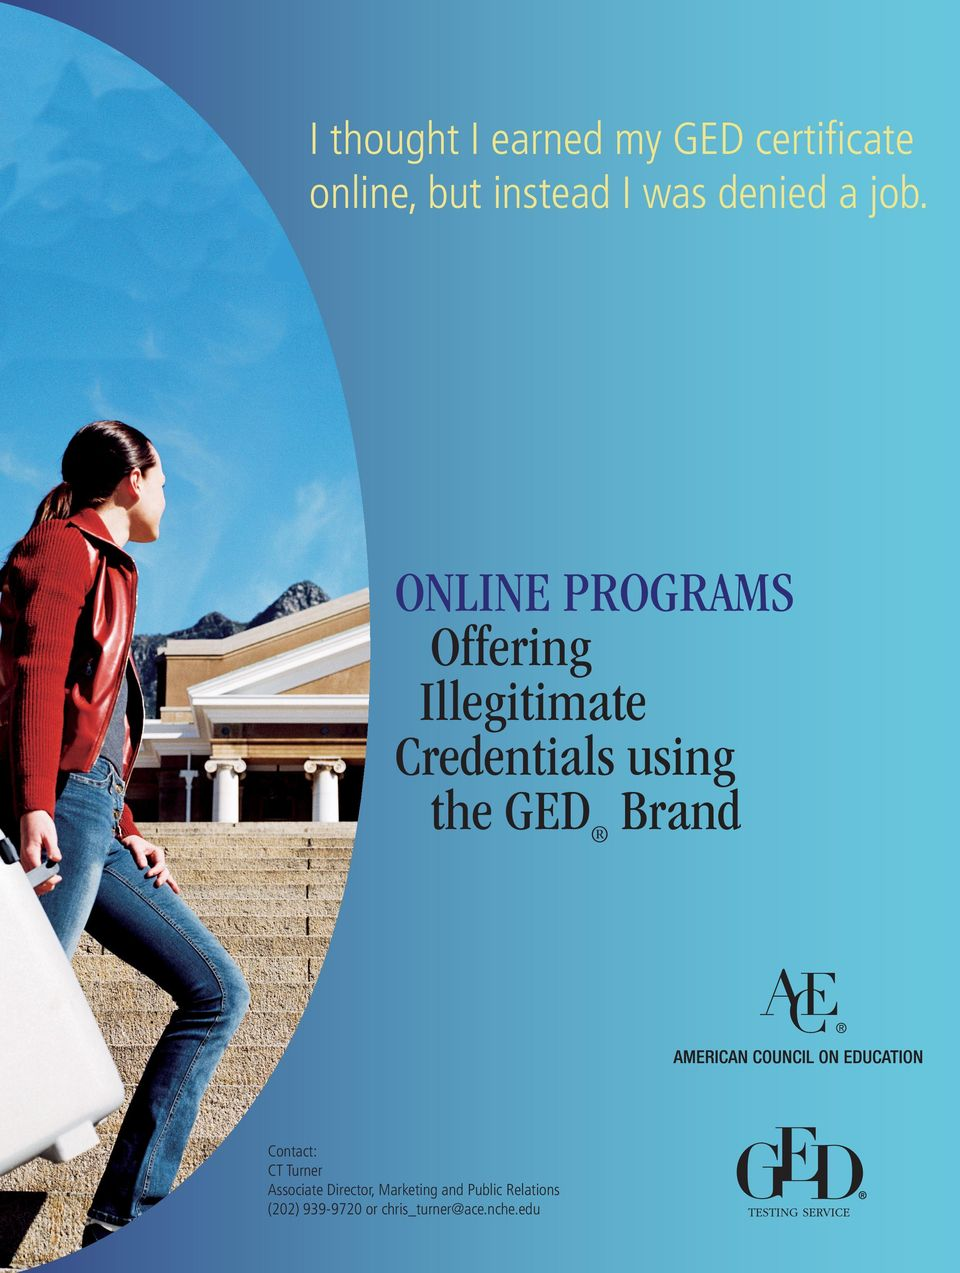 Online Programs Offering Illegitimate Credentials using the GED